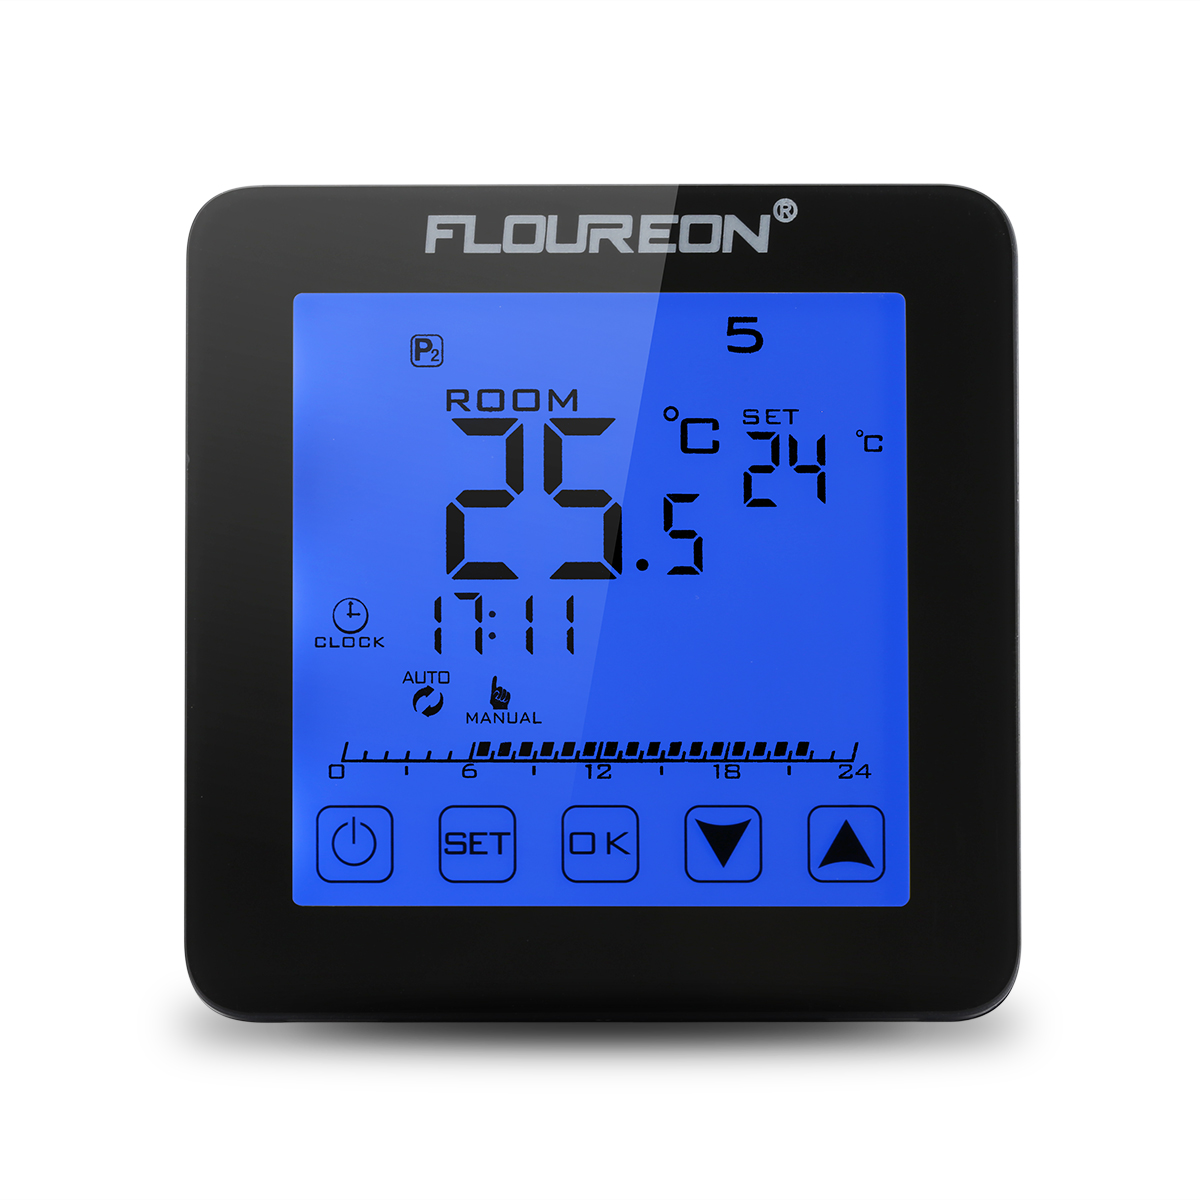 lcd digital raum touch thermostat heizen k hlen temperaturregler bodenf hler 16a ebay. Black Bedroom Furniture Sets. Home Design Ideas